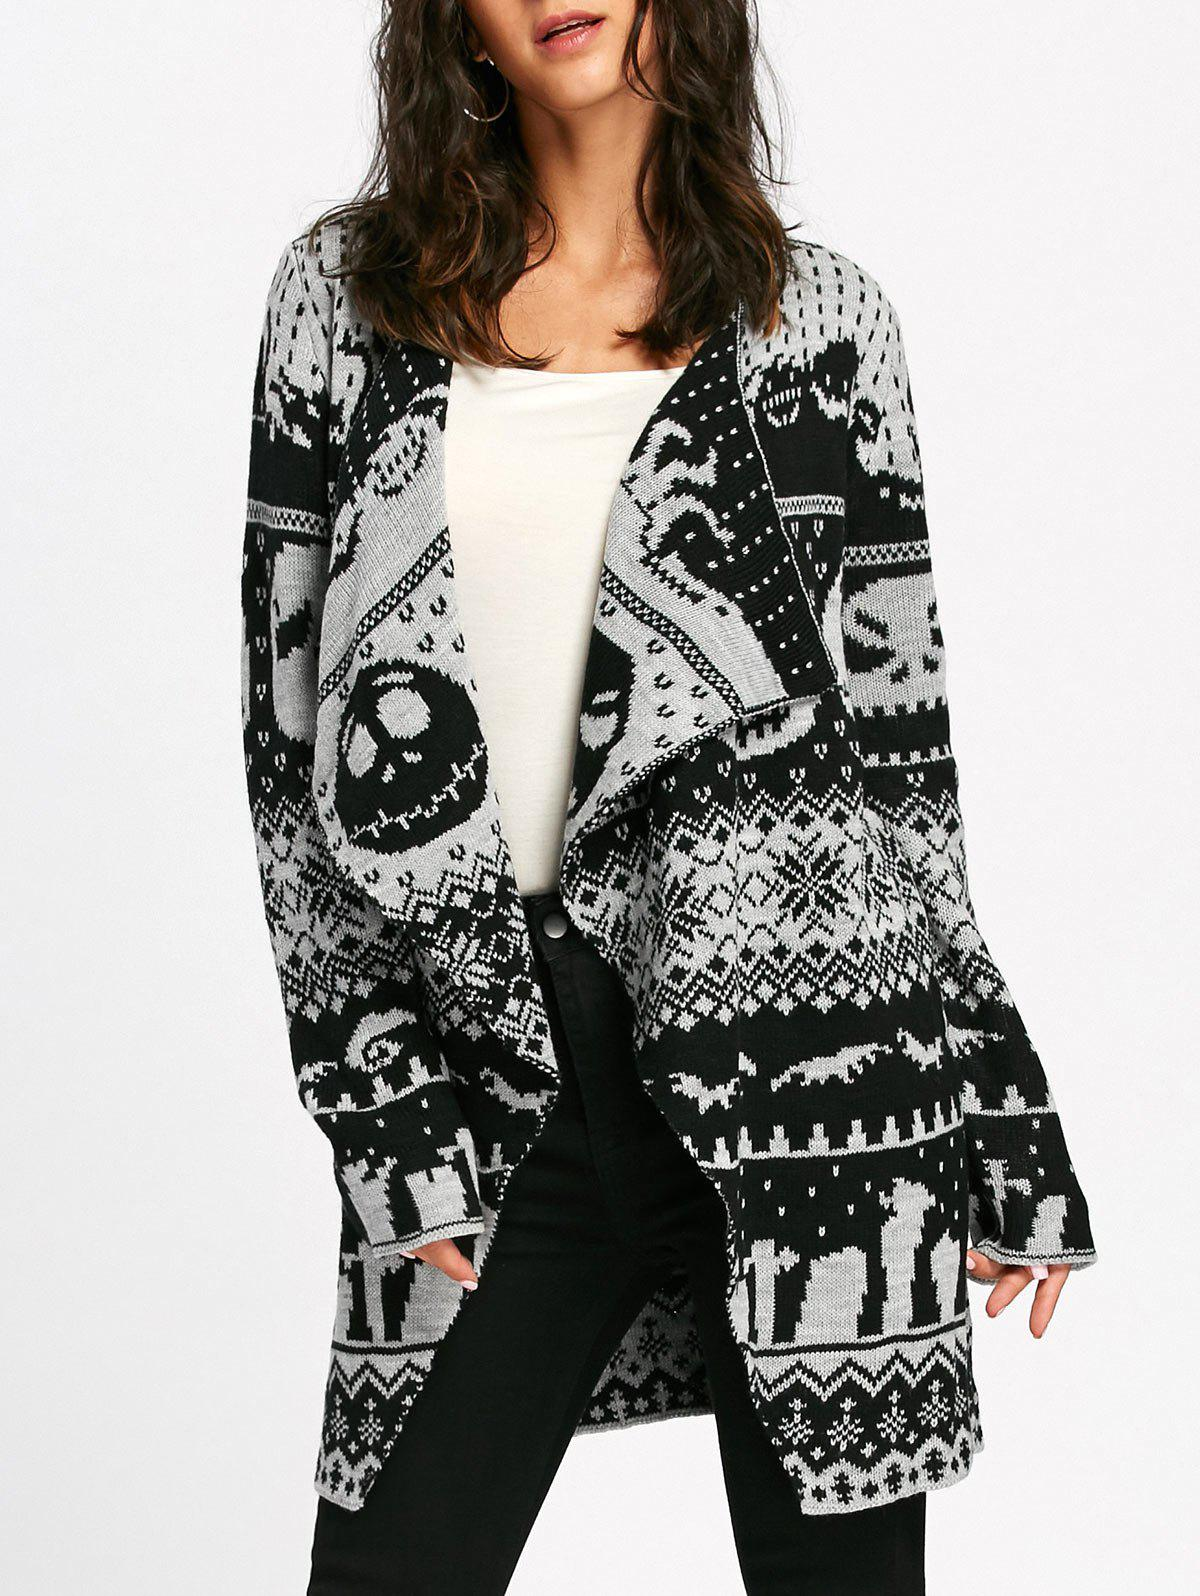 Halloween Skull Knit Tunic CardiganWOMEN<br><br>Size: L; Color: WHITE AND BLACK; Type: Cardigans; Material: Acrylic,Polyester; Sleeve Length: Full; Collar: Collarless; Style: Fashion; Pattern Type: Skulls; Season: Fall,Spring,Winter; Elasticity: Micro-elastic; Weight: 0.6600kg; Package Contents: 1 x Cardigan;